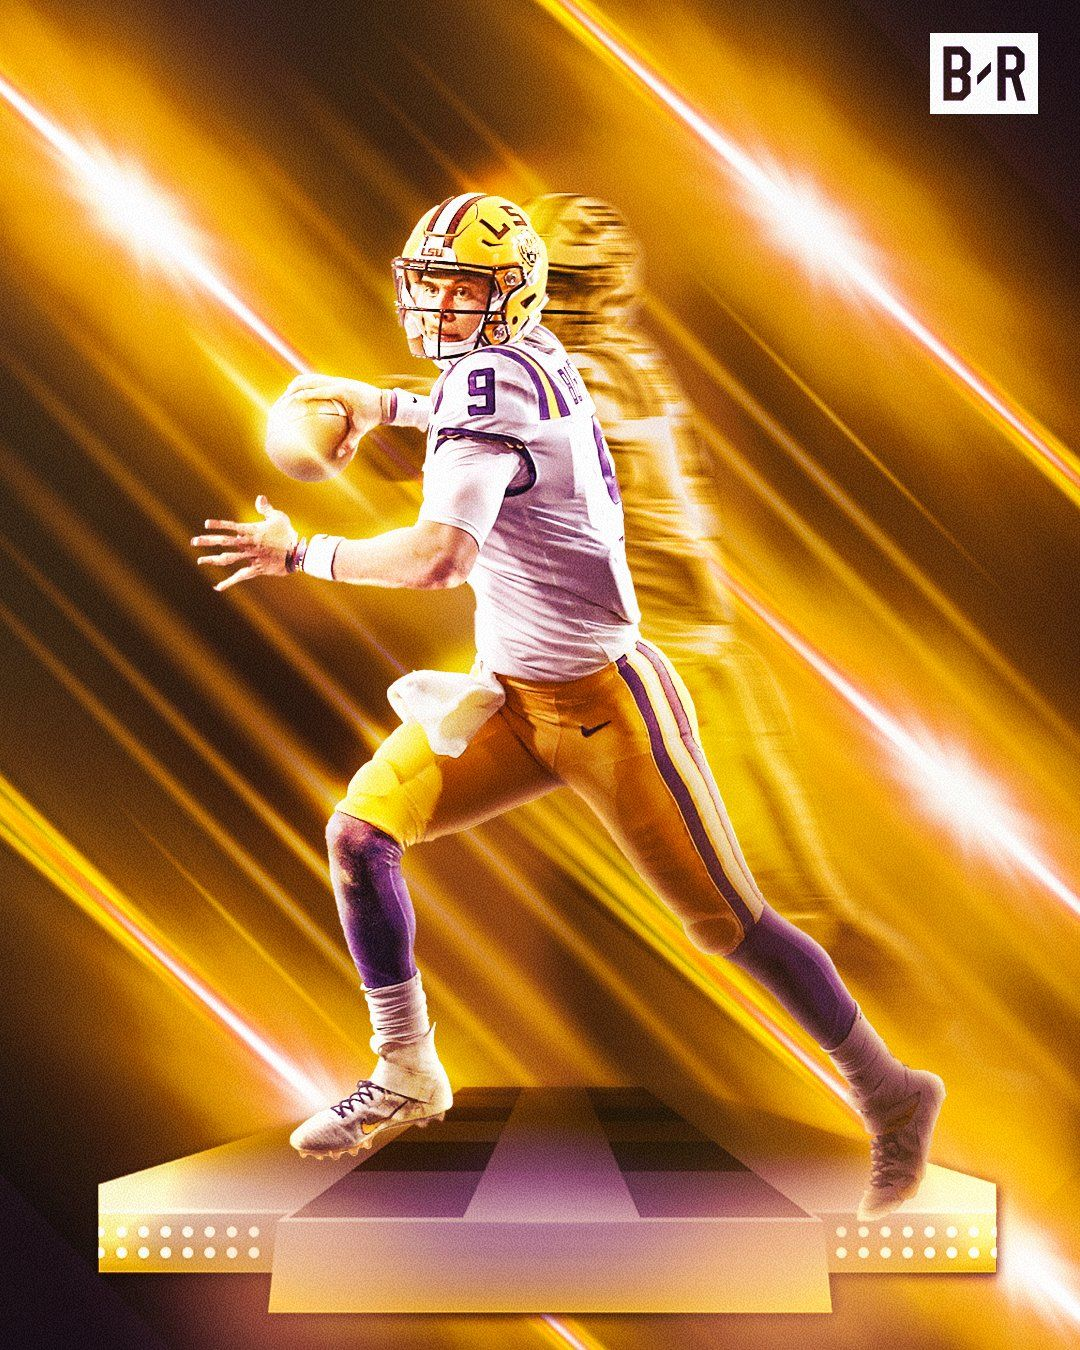 Bleacher Report on Lsu tigers football, Lsu, Joe burrow